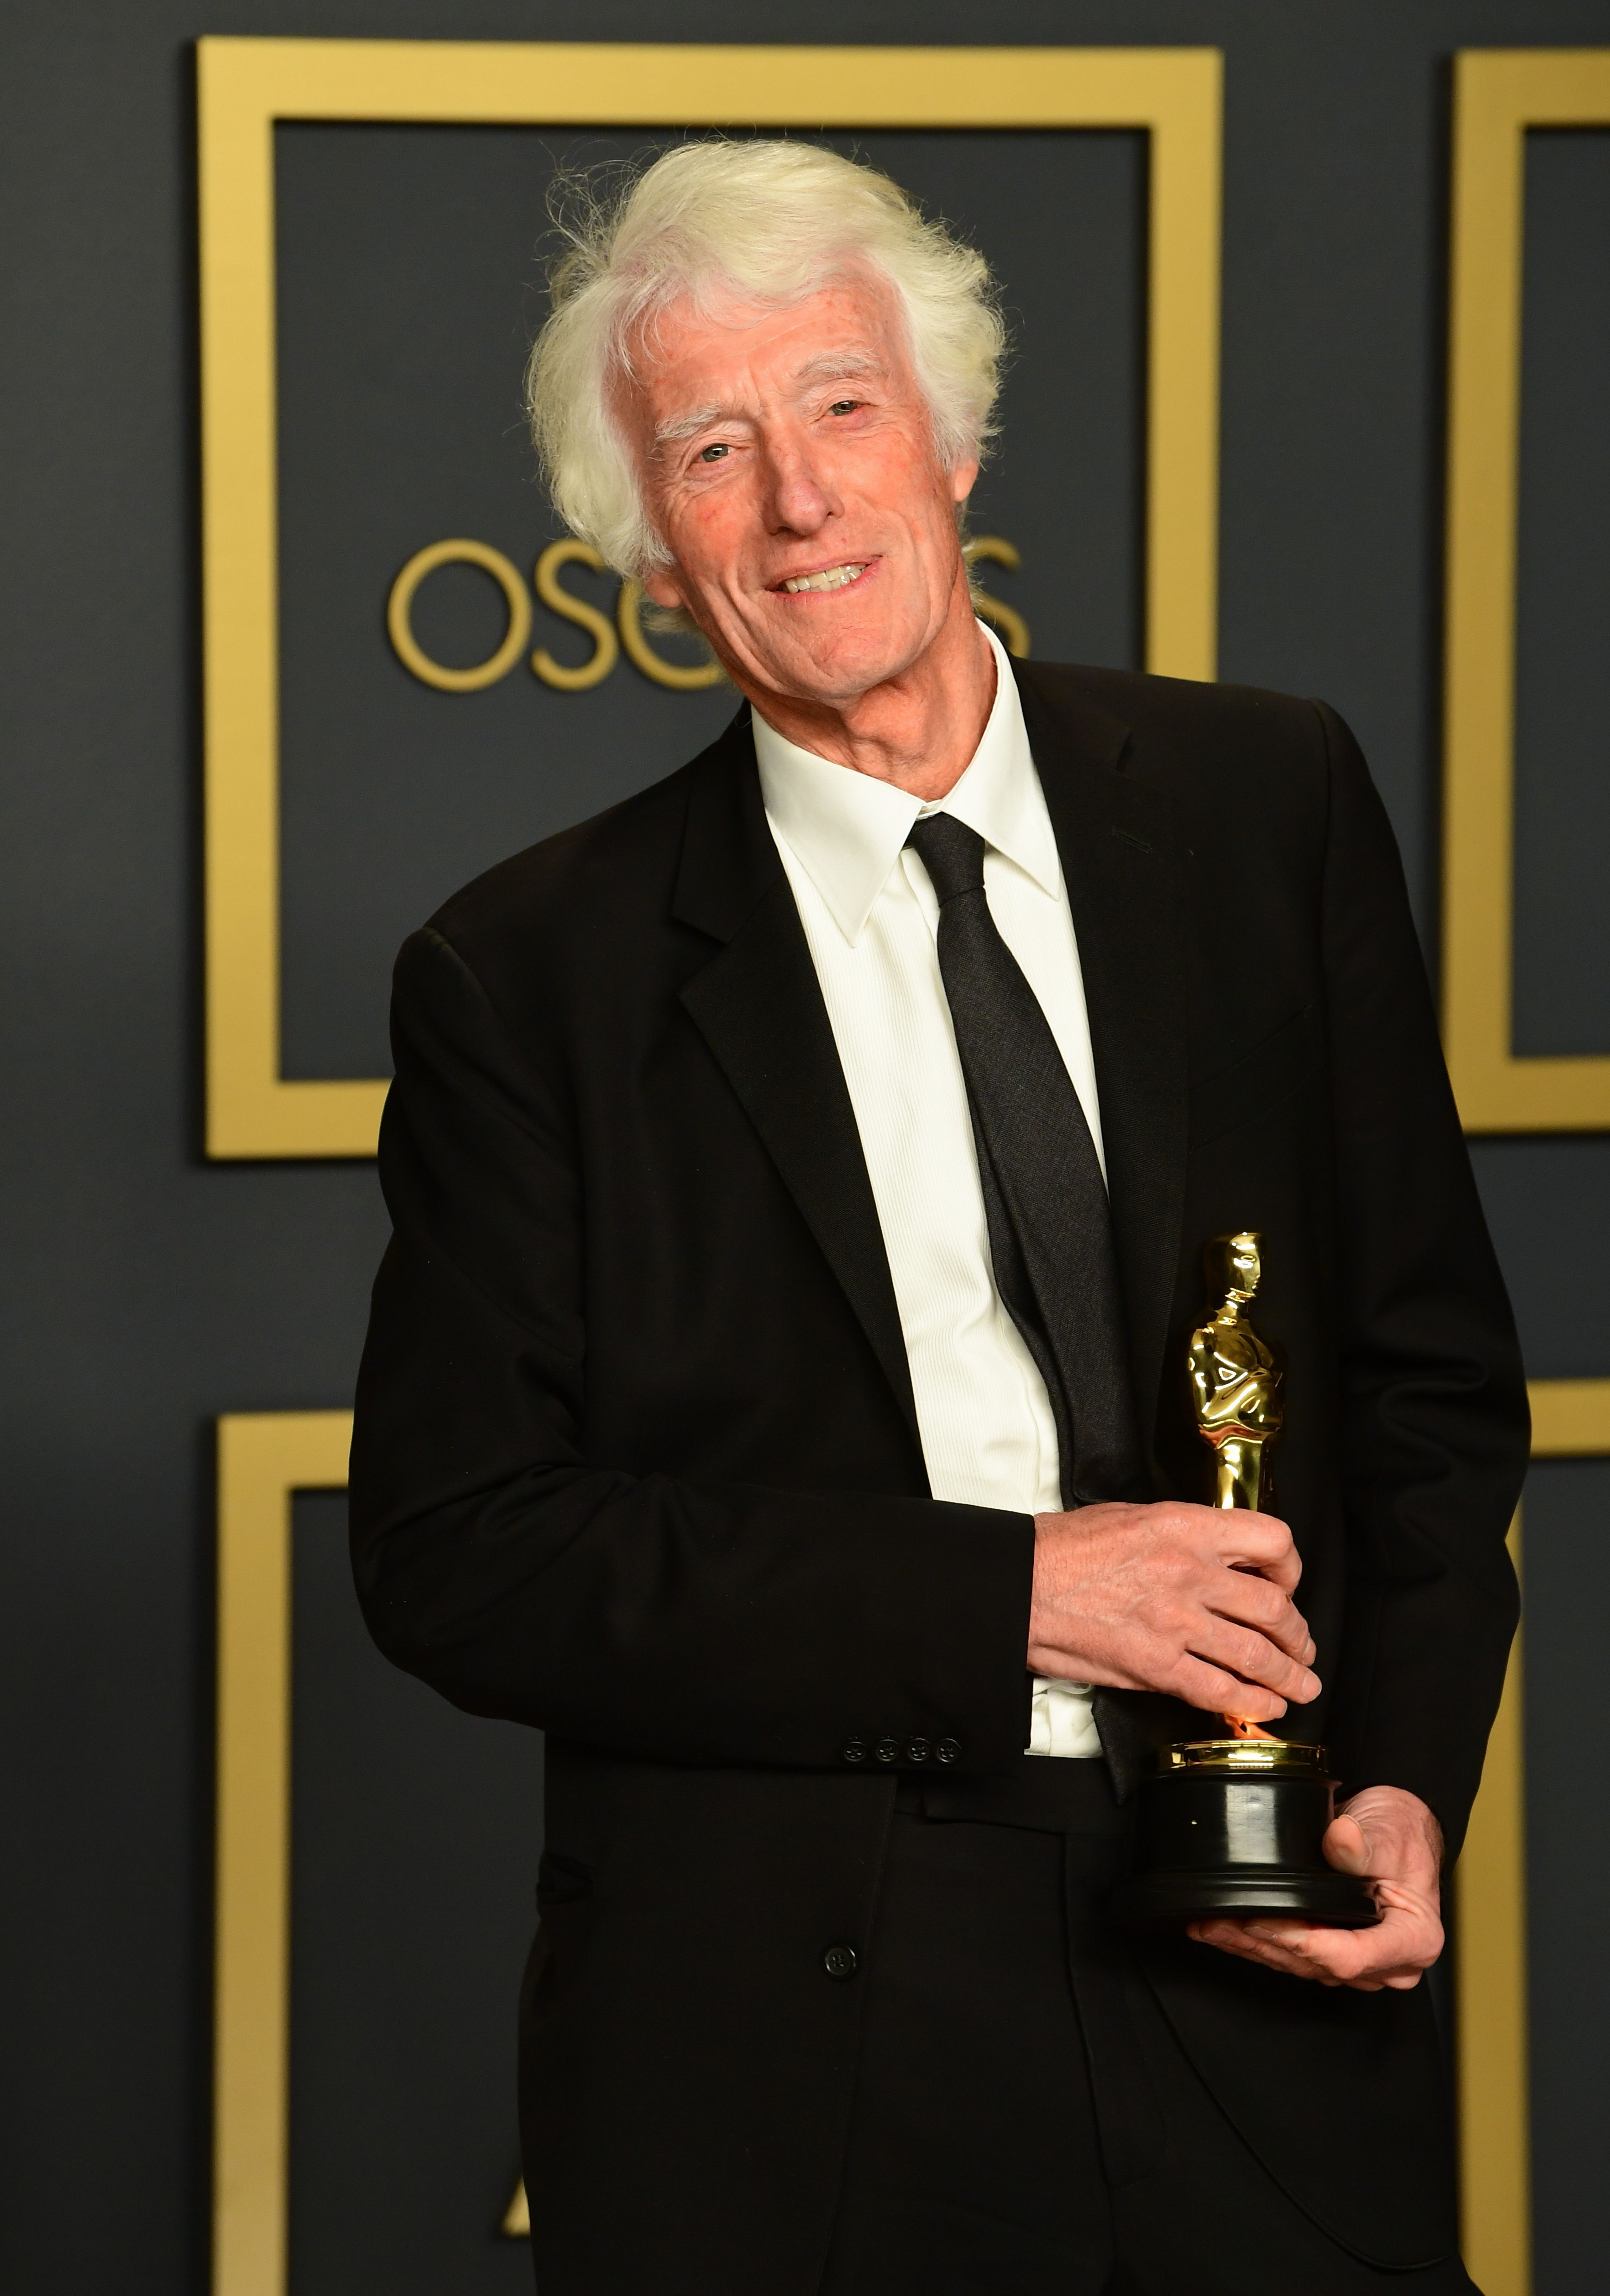 """British cinematographer Roger Deakins poses in the press room with the Oscar for Best Cinematography for """"1917"""" during the 92nd Oscars at the Dolby Theater in Hollywood, California on February 9, 2020. (Photo by FREDERIC J. BROWN / AFP) (Photo by FREDERIC J. BROWN/AFP via Getty Images)"""